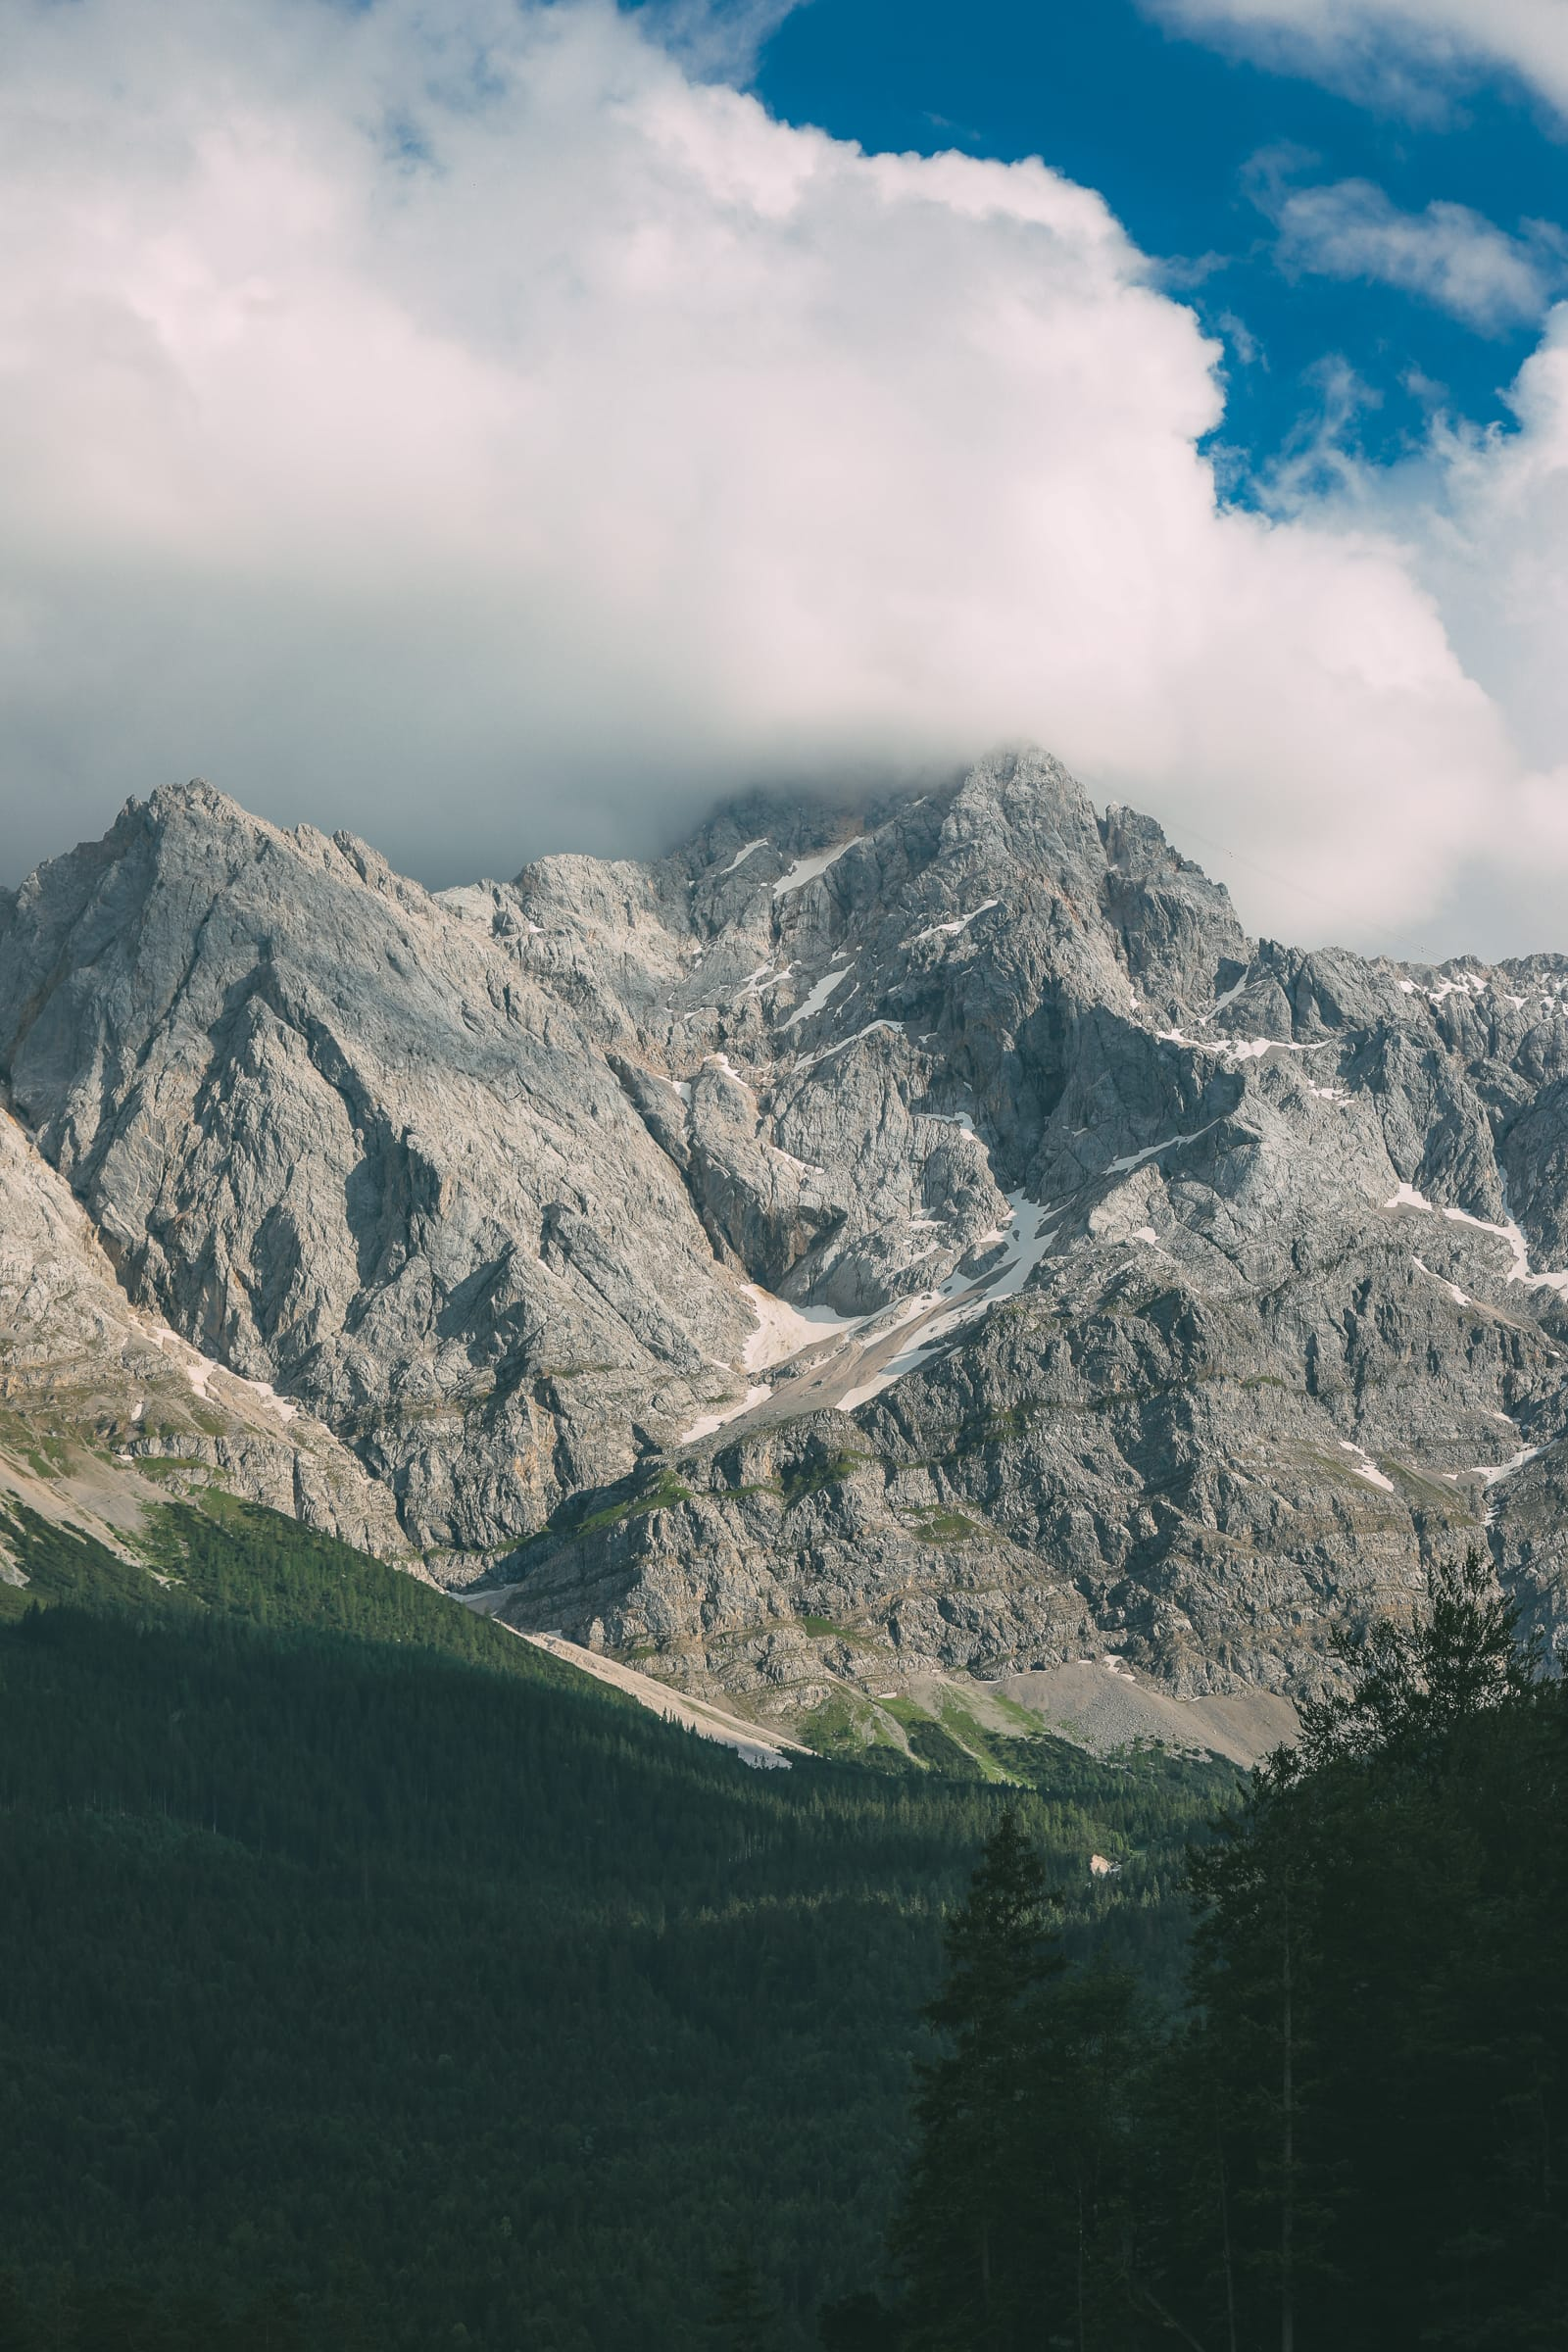 Zugspitze And Eibsee - The Tallest Mountain And One Of The Most Beautiful Lakes In Germany! (29)